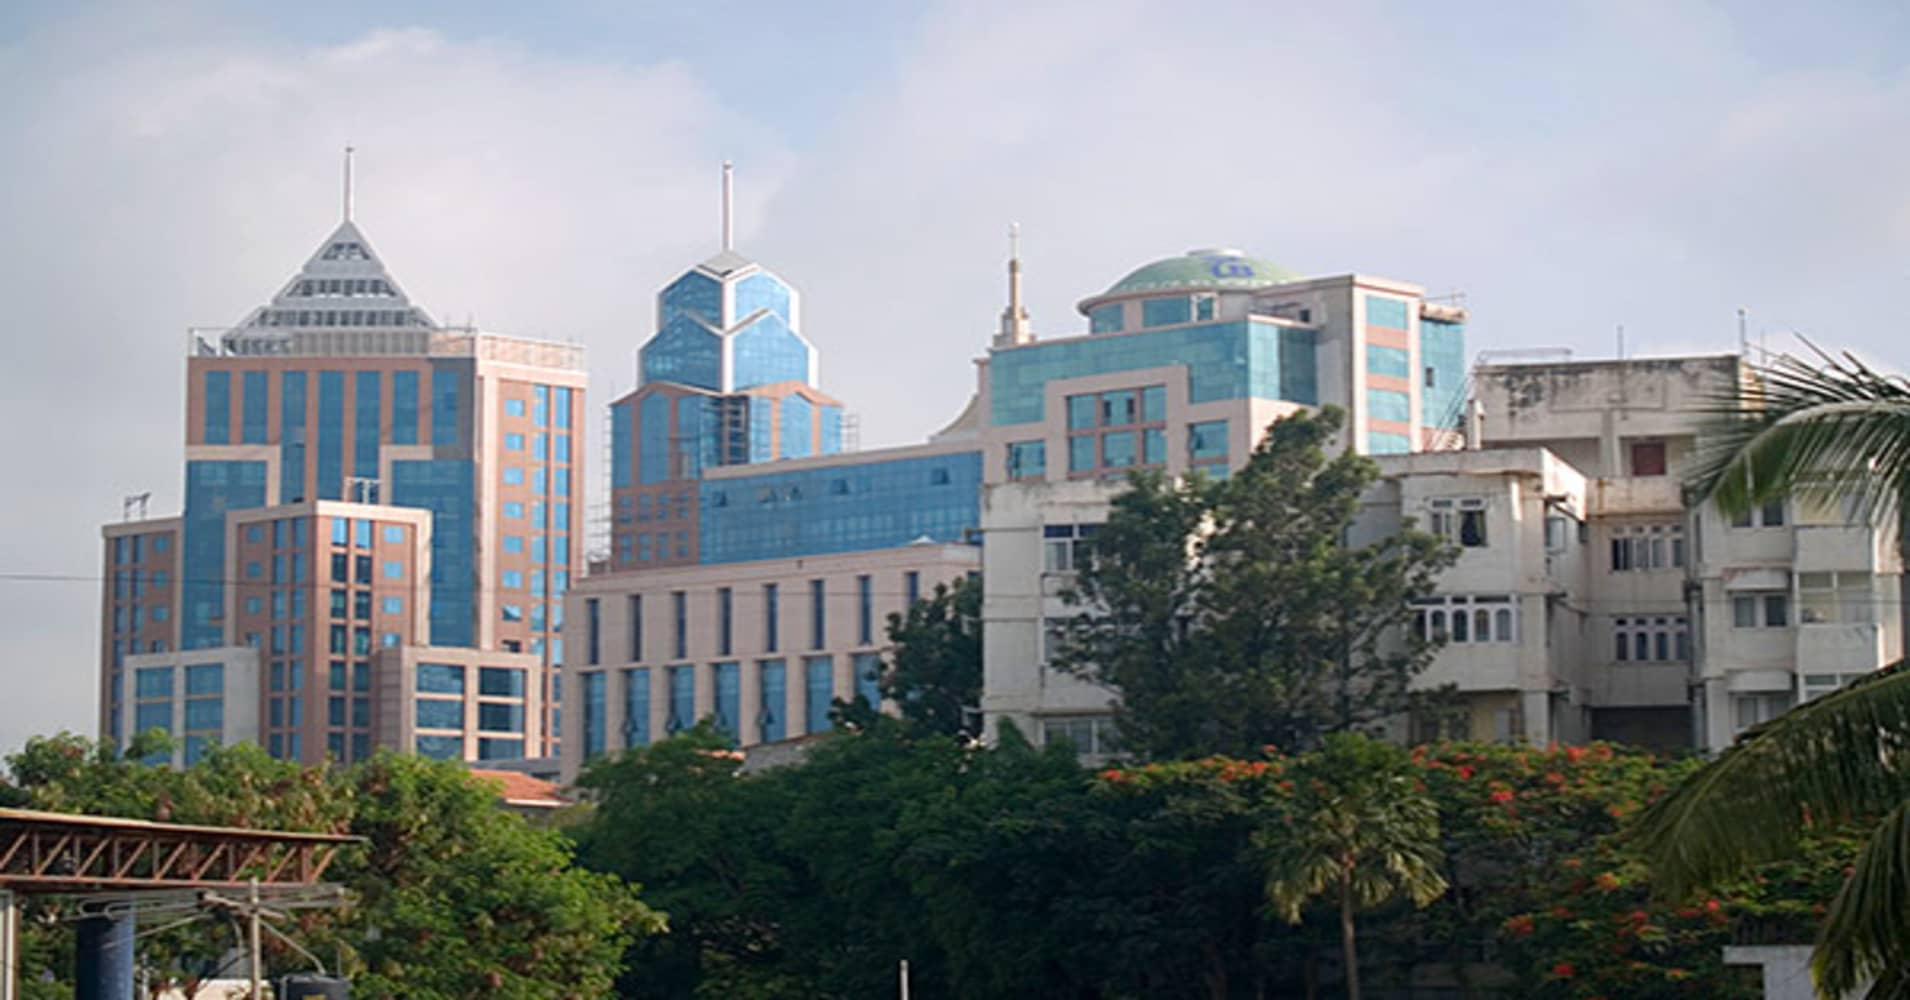 In addition to its Dallas office, Goldman Sachs maintains a presence all over the U.S., including in such cities as Boston, Chicago and Los Angeles. It also maintains a presence in such international locations as Europe, Africa, Asia and the Middle East.Bangalore, India, was one of the cities that accounted for  of the company's hires in 2011 and 2012, according to